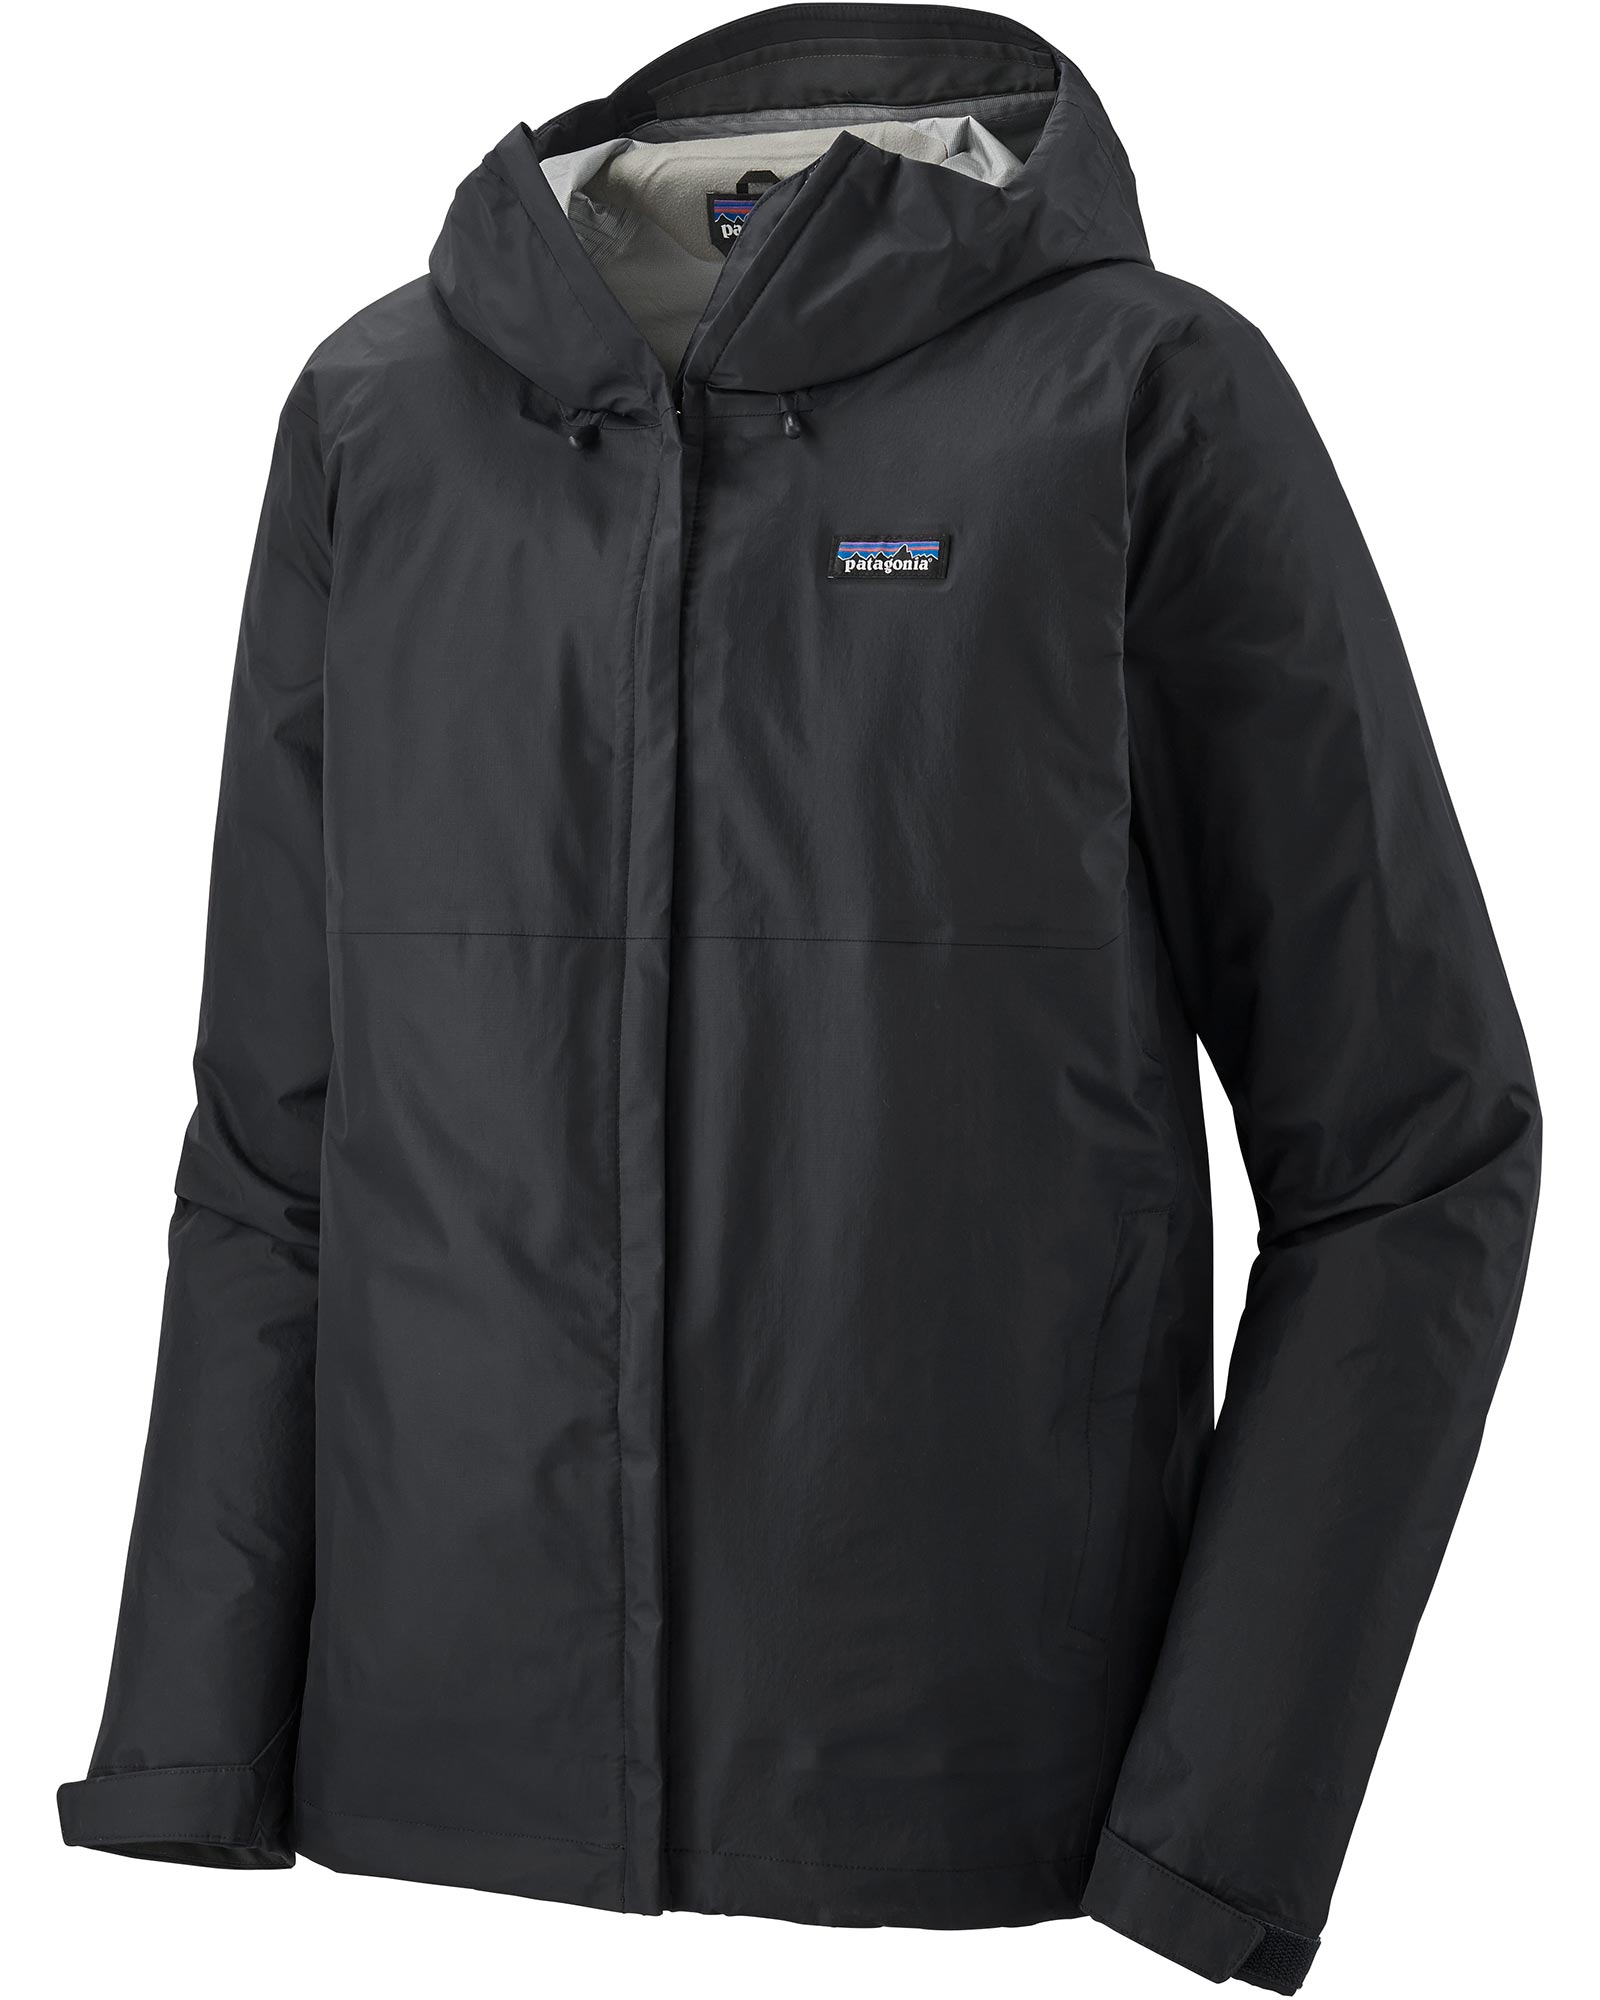 Patagonia Men's Torrentshell 3L Jacket 0